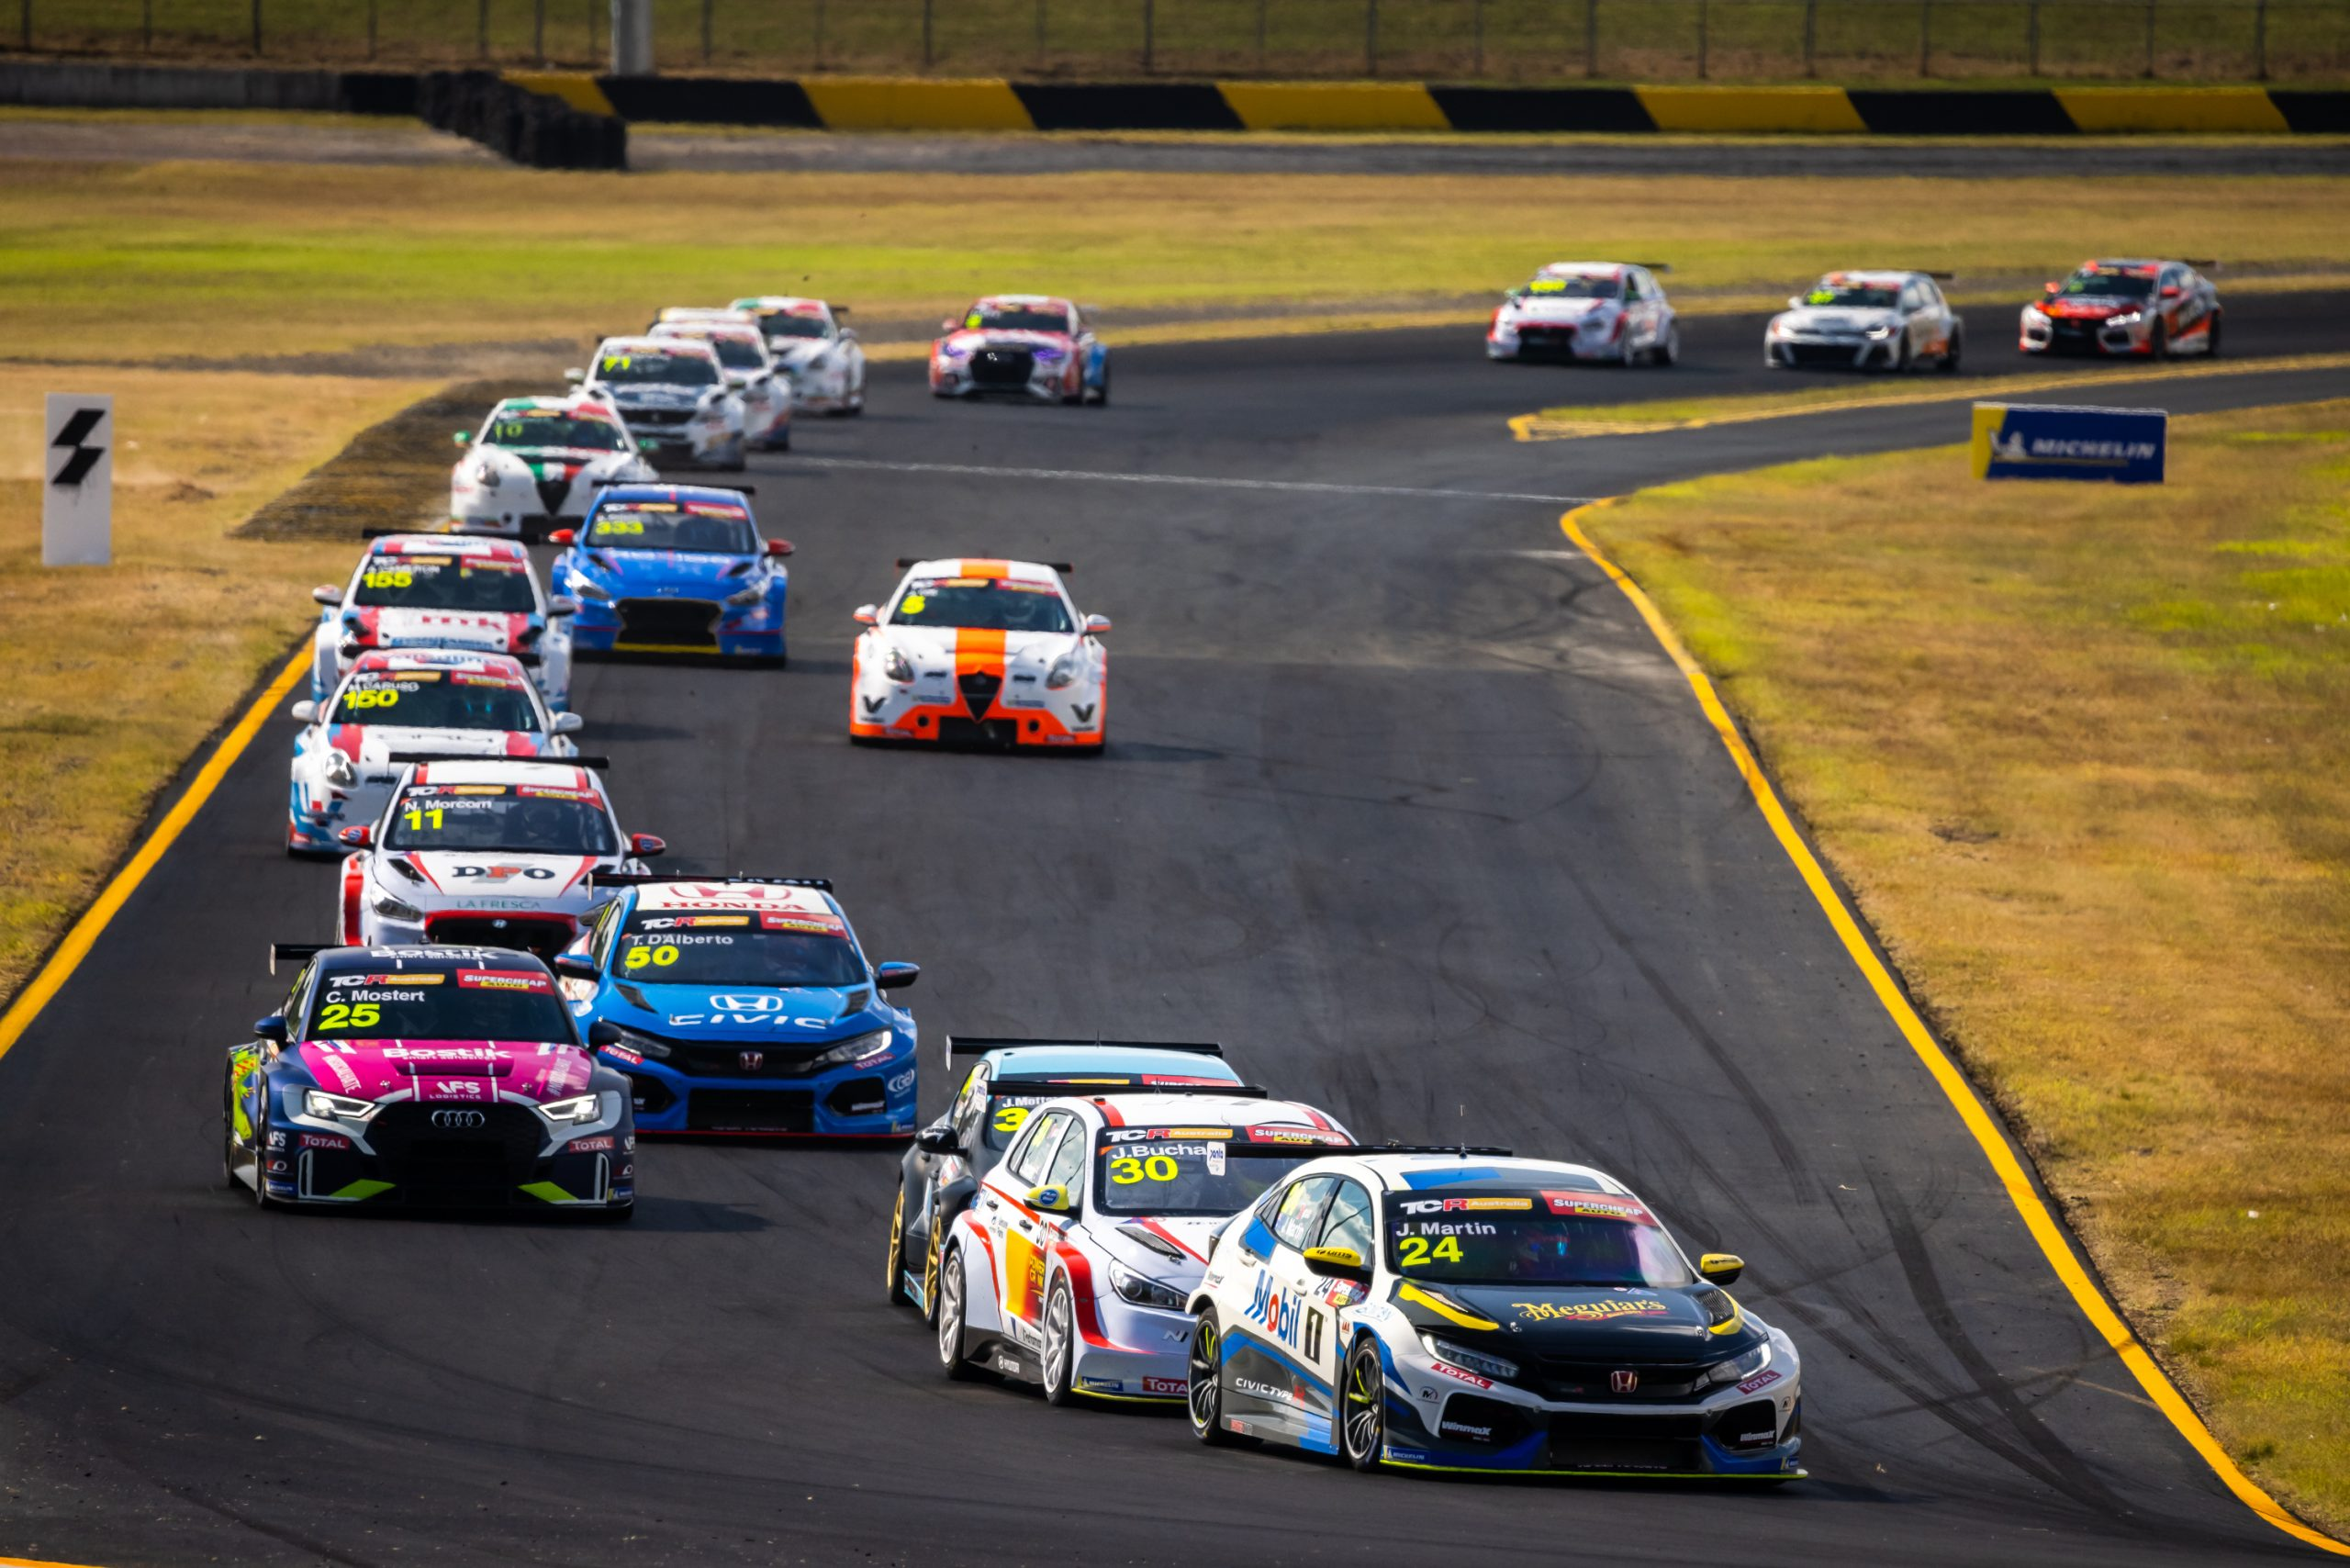 Milestone passed with 1000 TCR cars produced globally